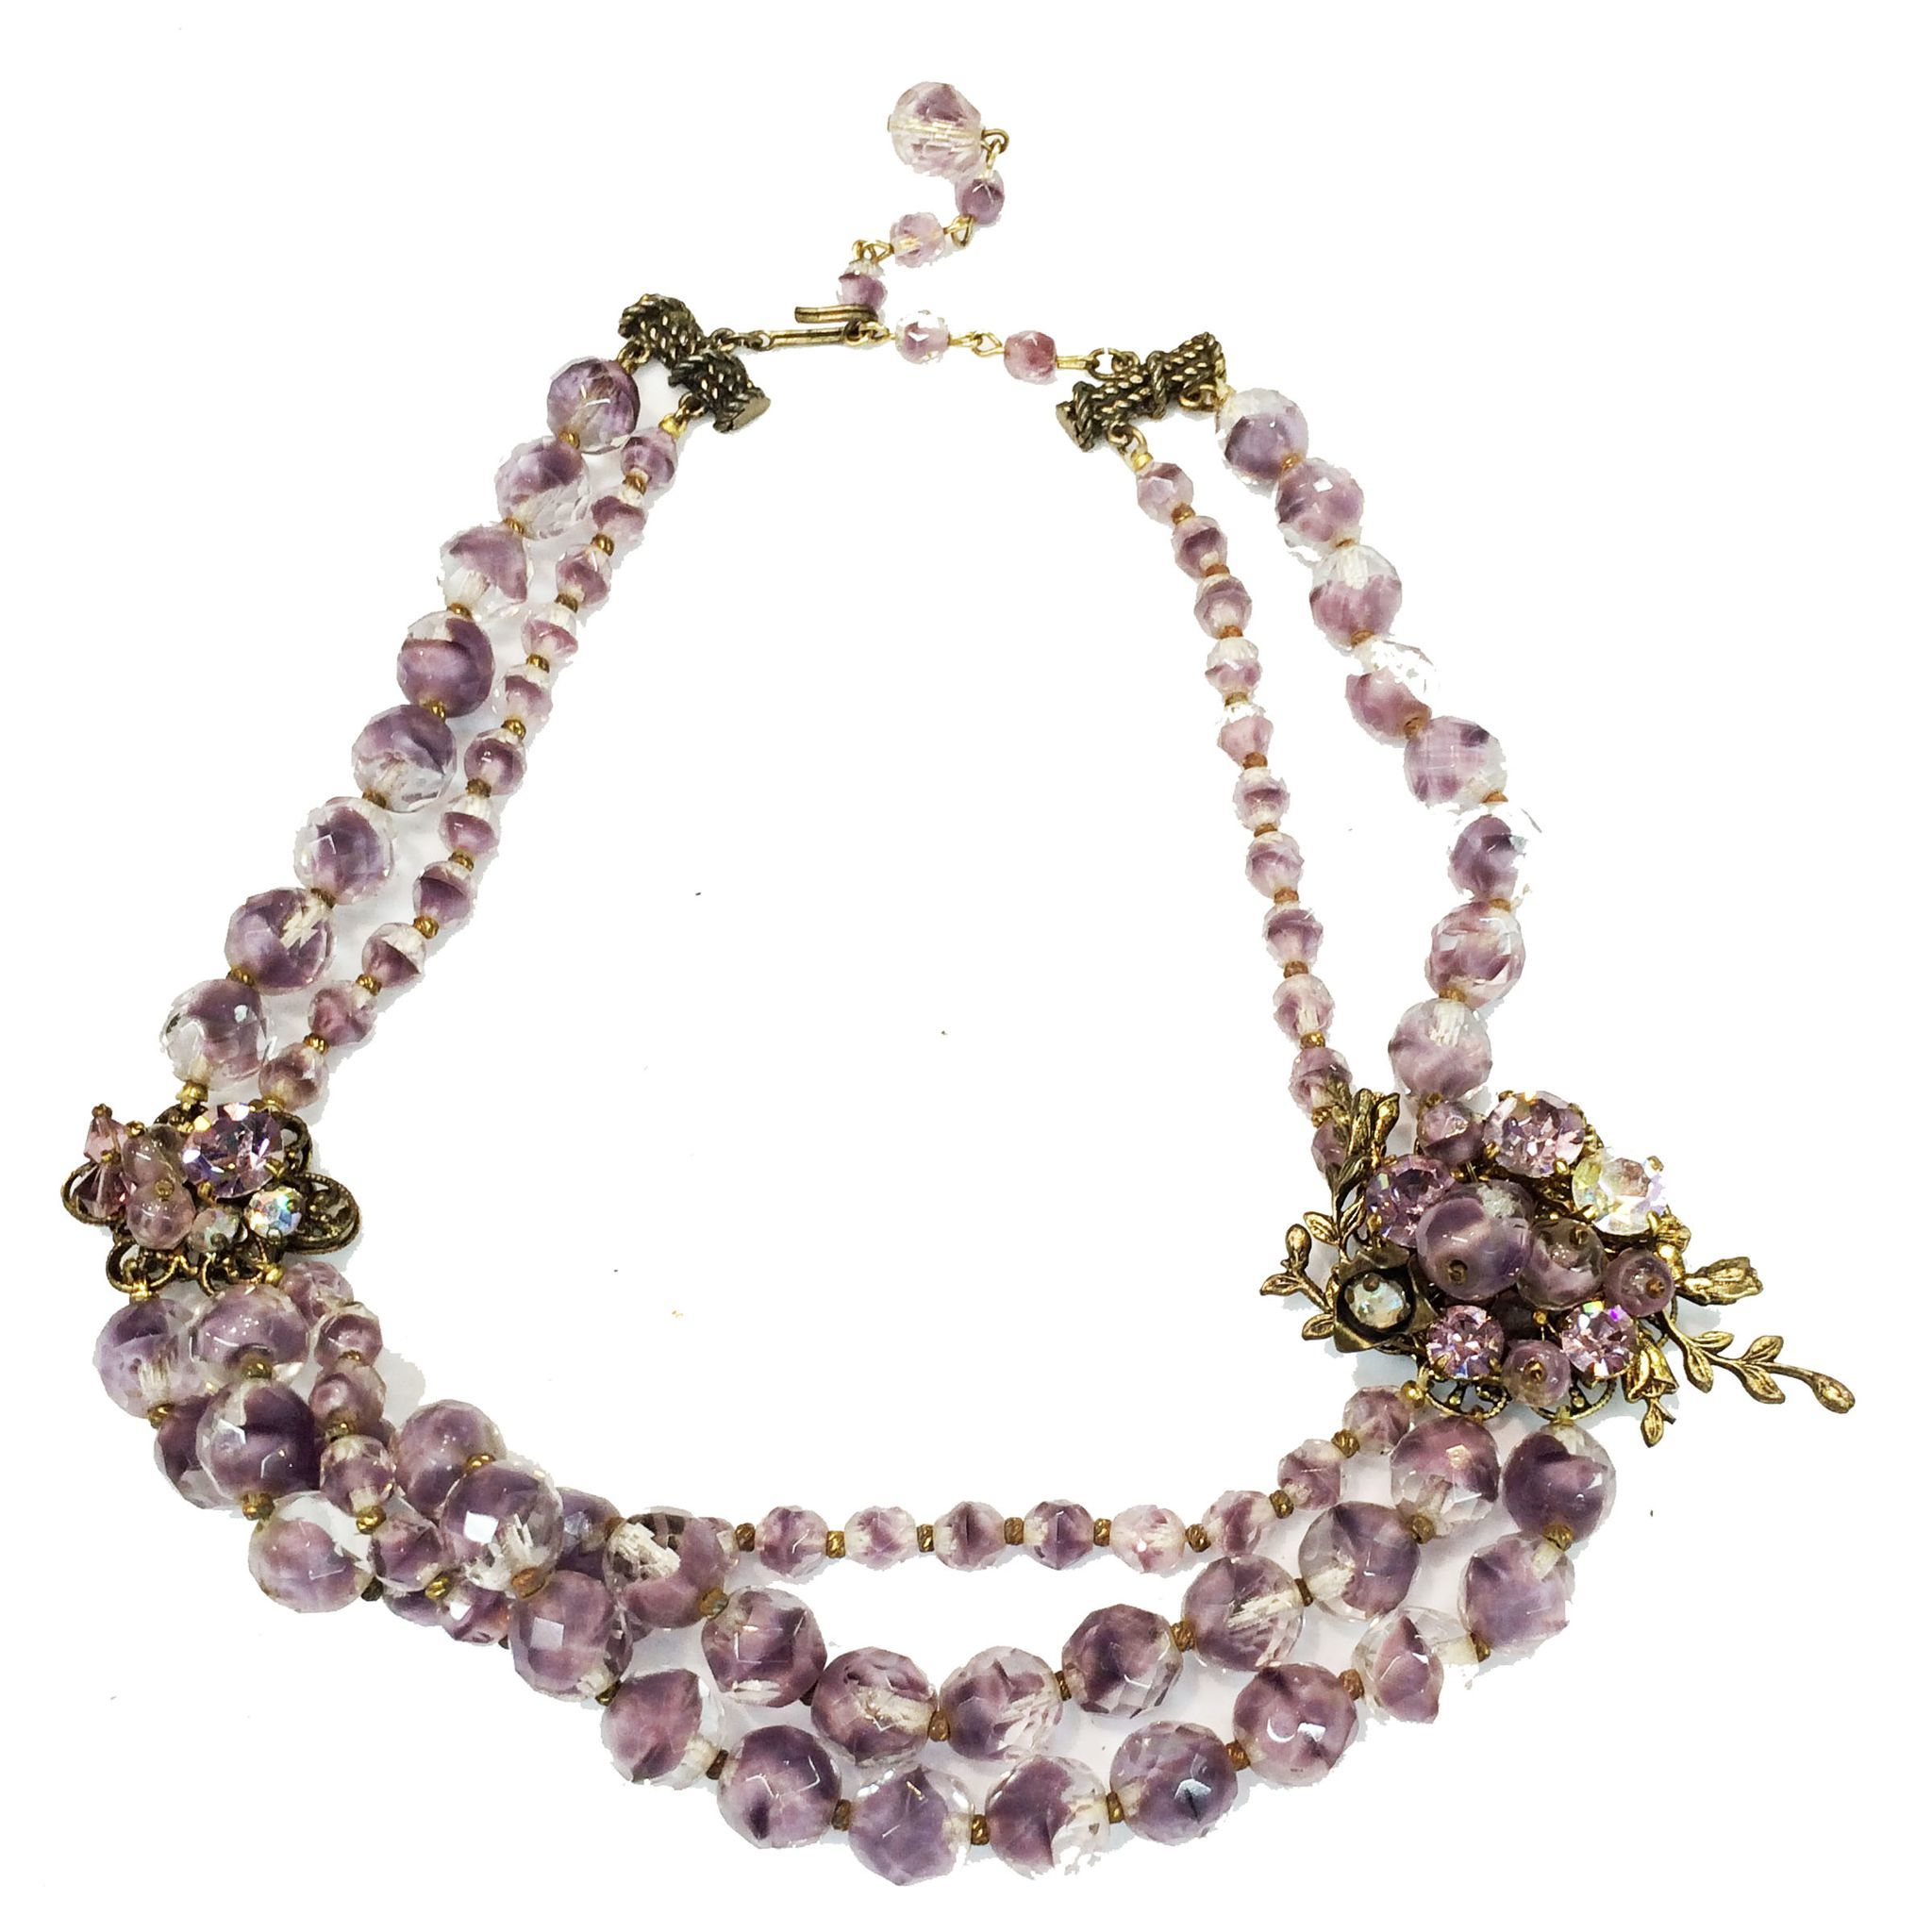 Ladylike Lilac and Clear European Glass Bead Necklace with Triple Strand Drop and Brass Detailing